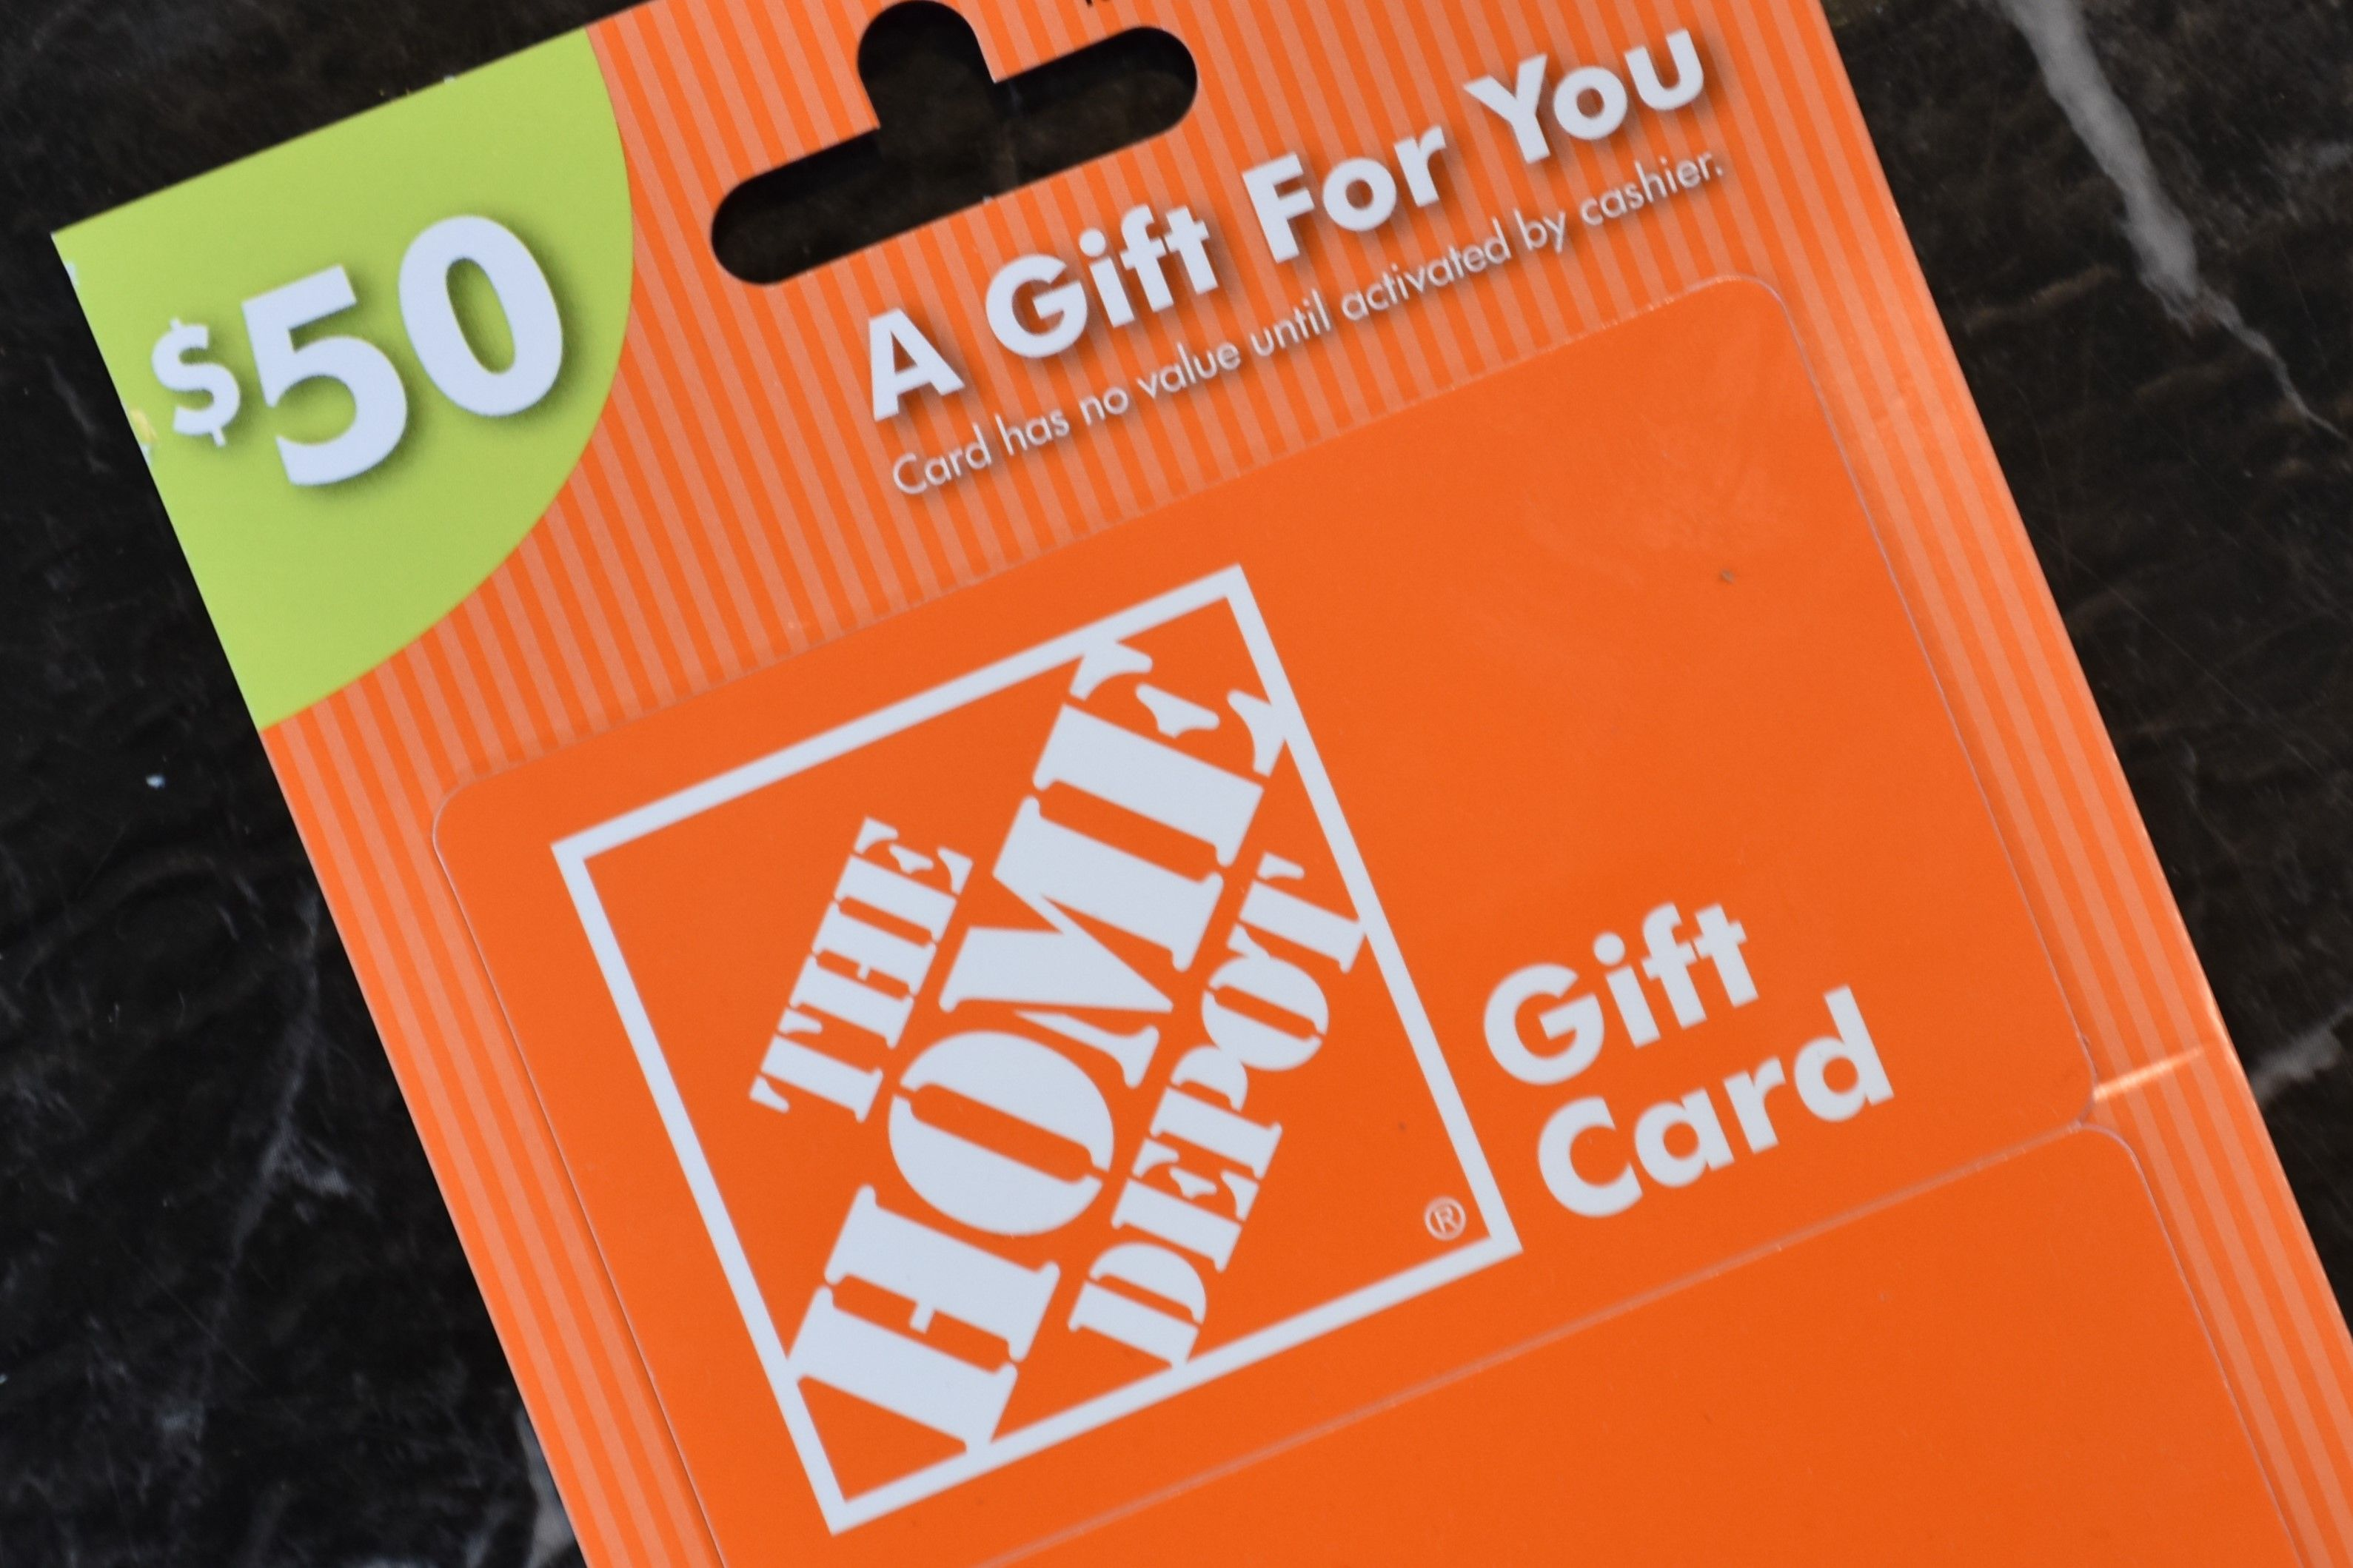 Click here to enter the giveaway giveaway gift card